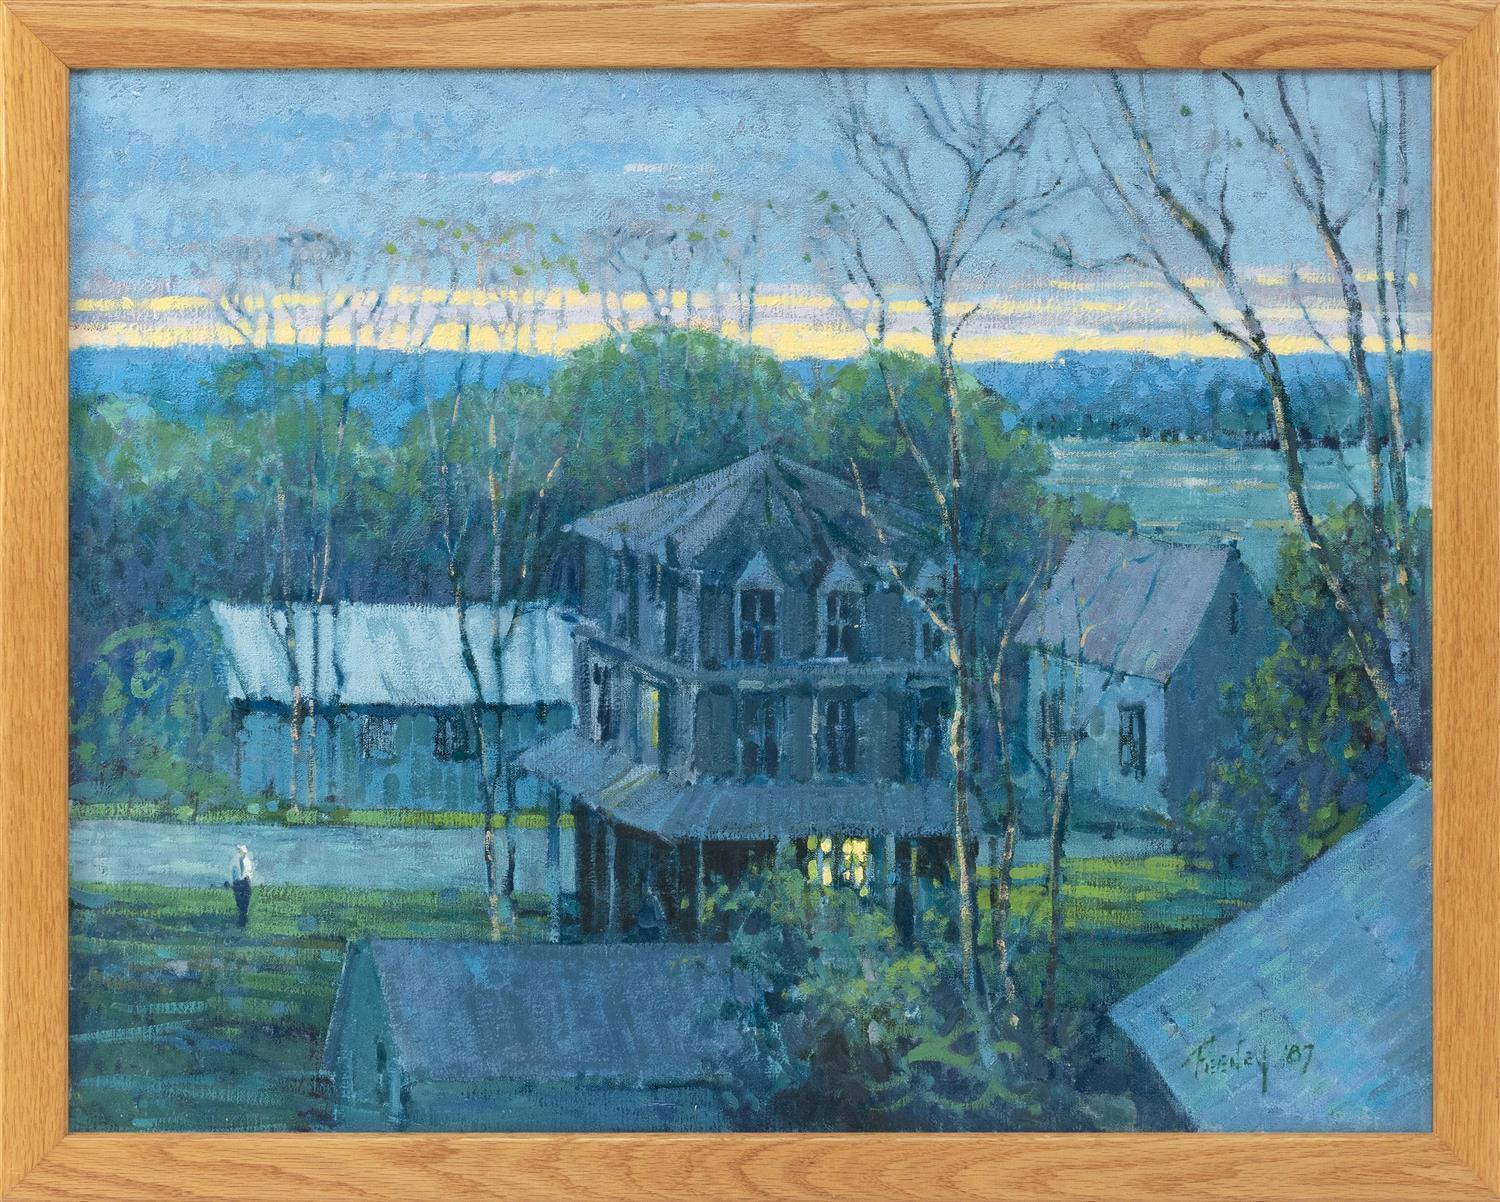 "LORETTA FEENEY, Massachusetts, b. 1961, Houses at twilight., Oil on canvas, 22"" x 28"". Framed 24"" x 30""."